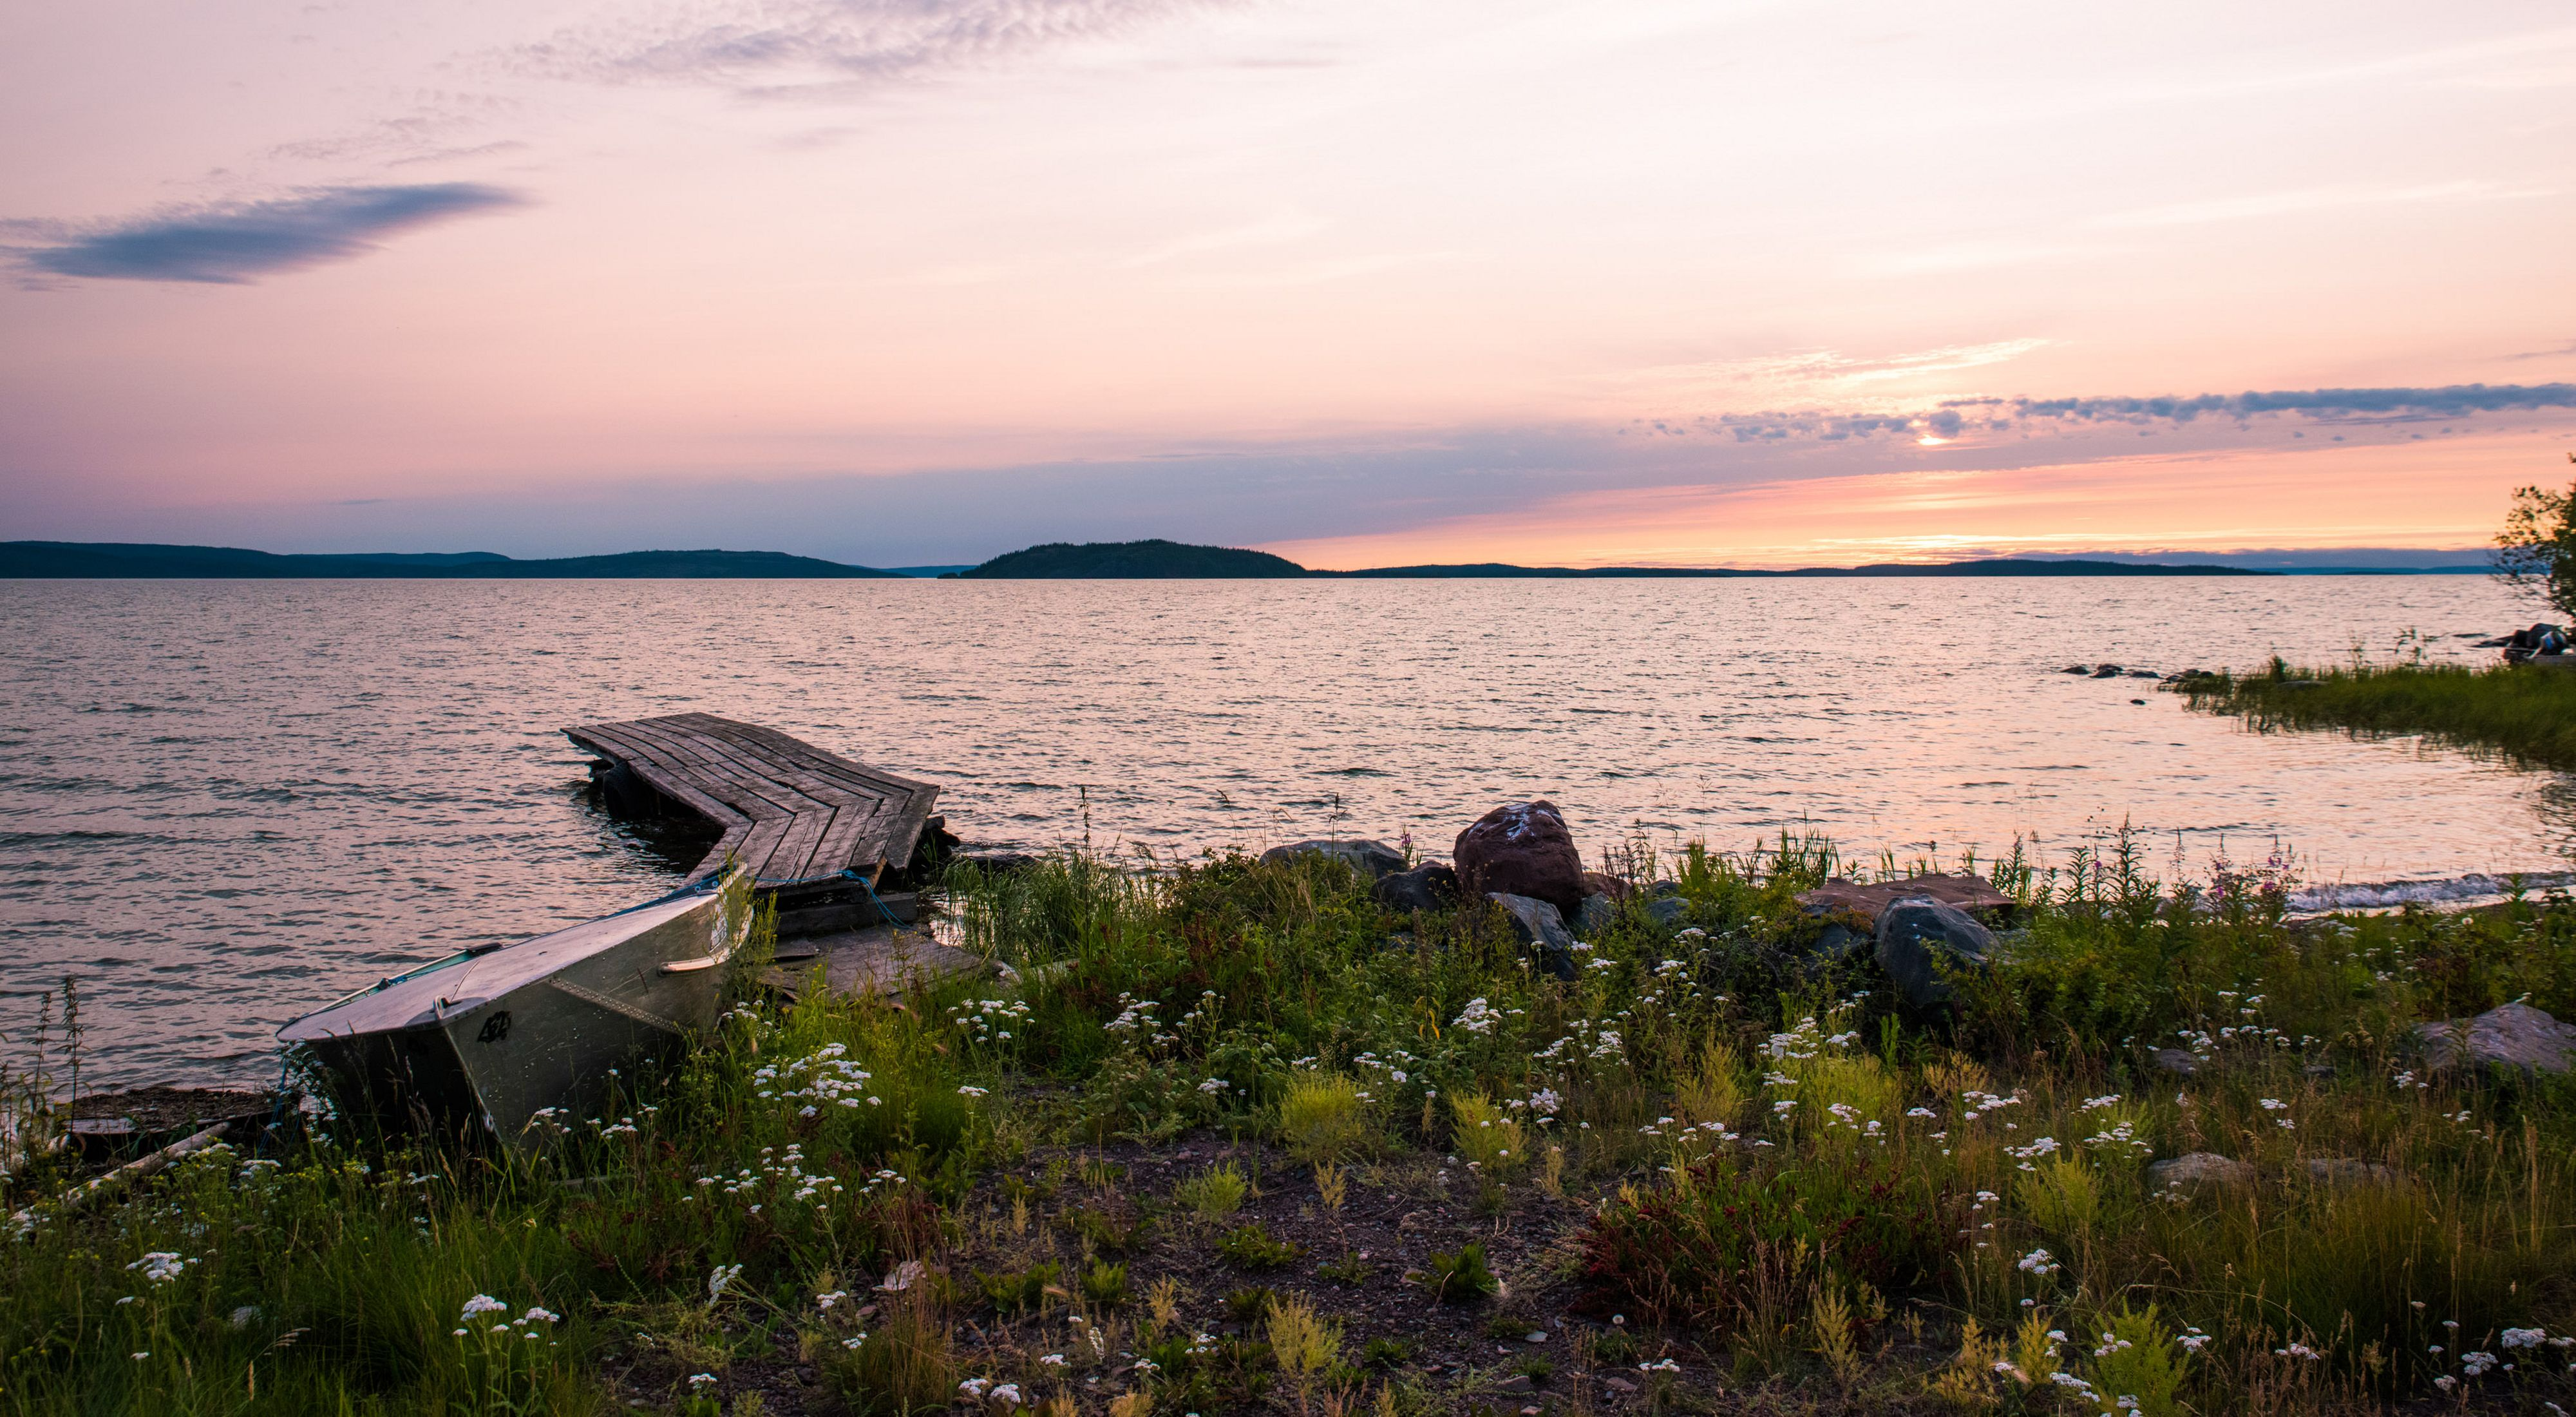 Wooden dock on a the shore of Great Slave Lake blooming with wildflowers at sunset